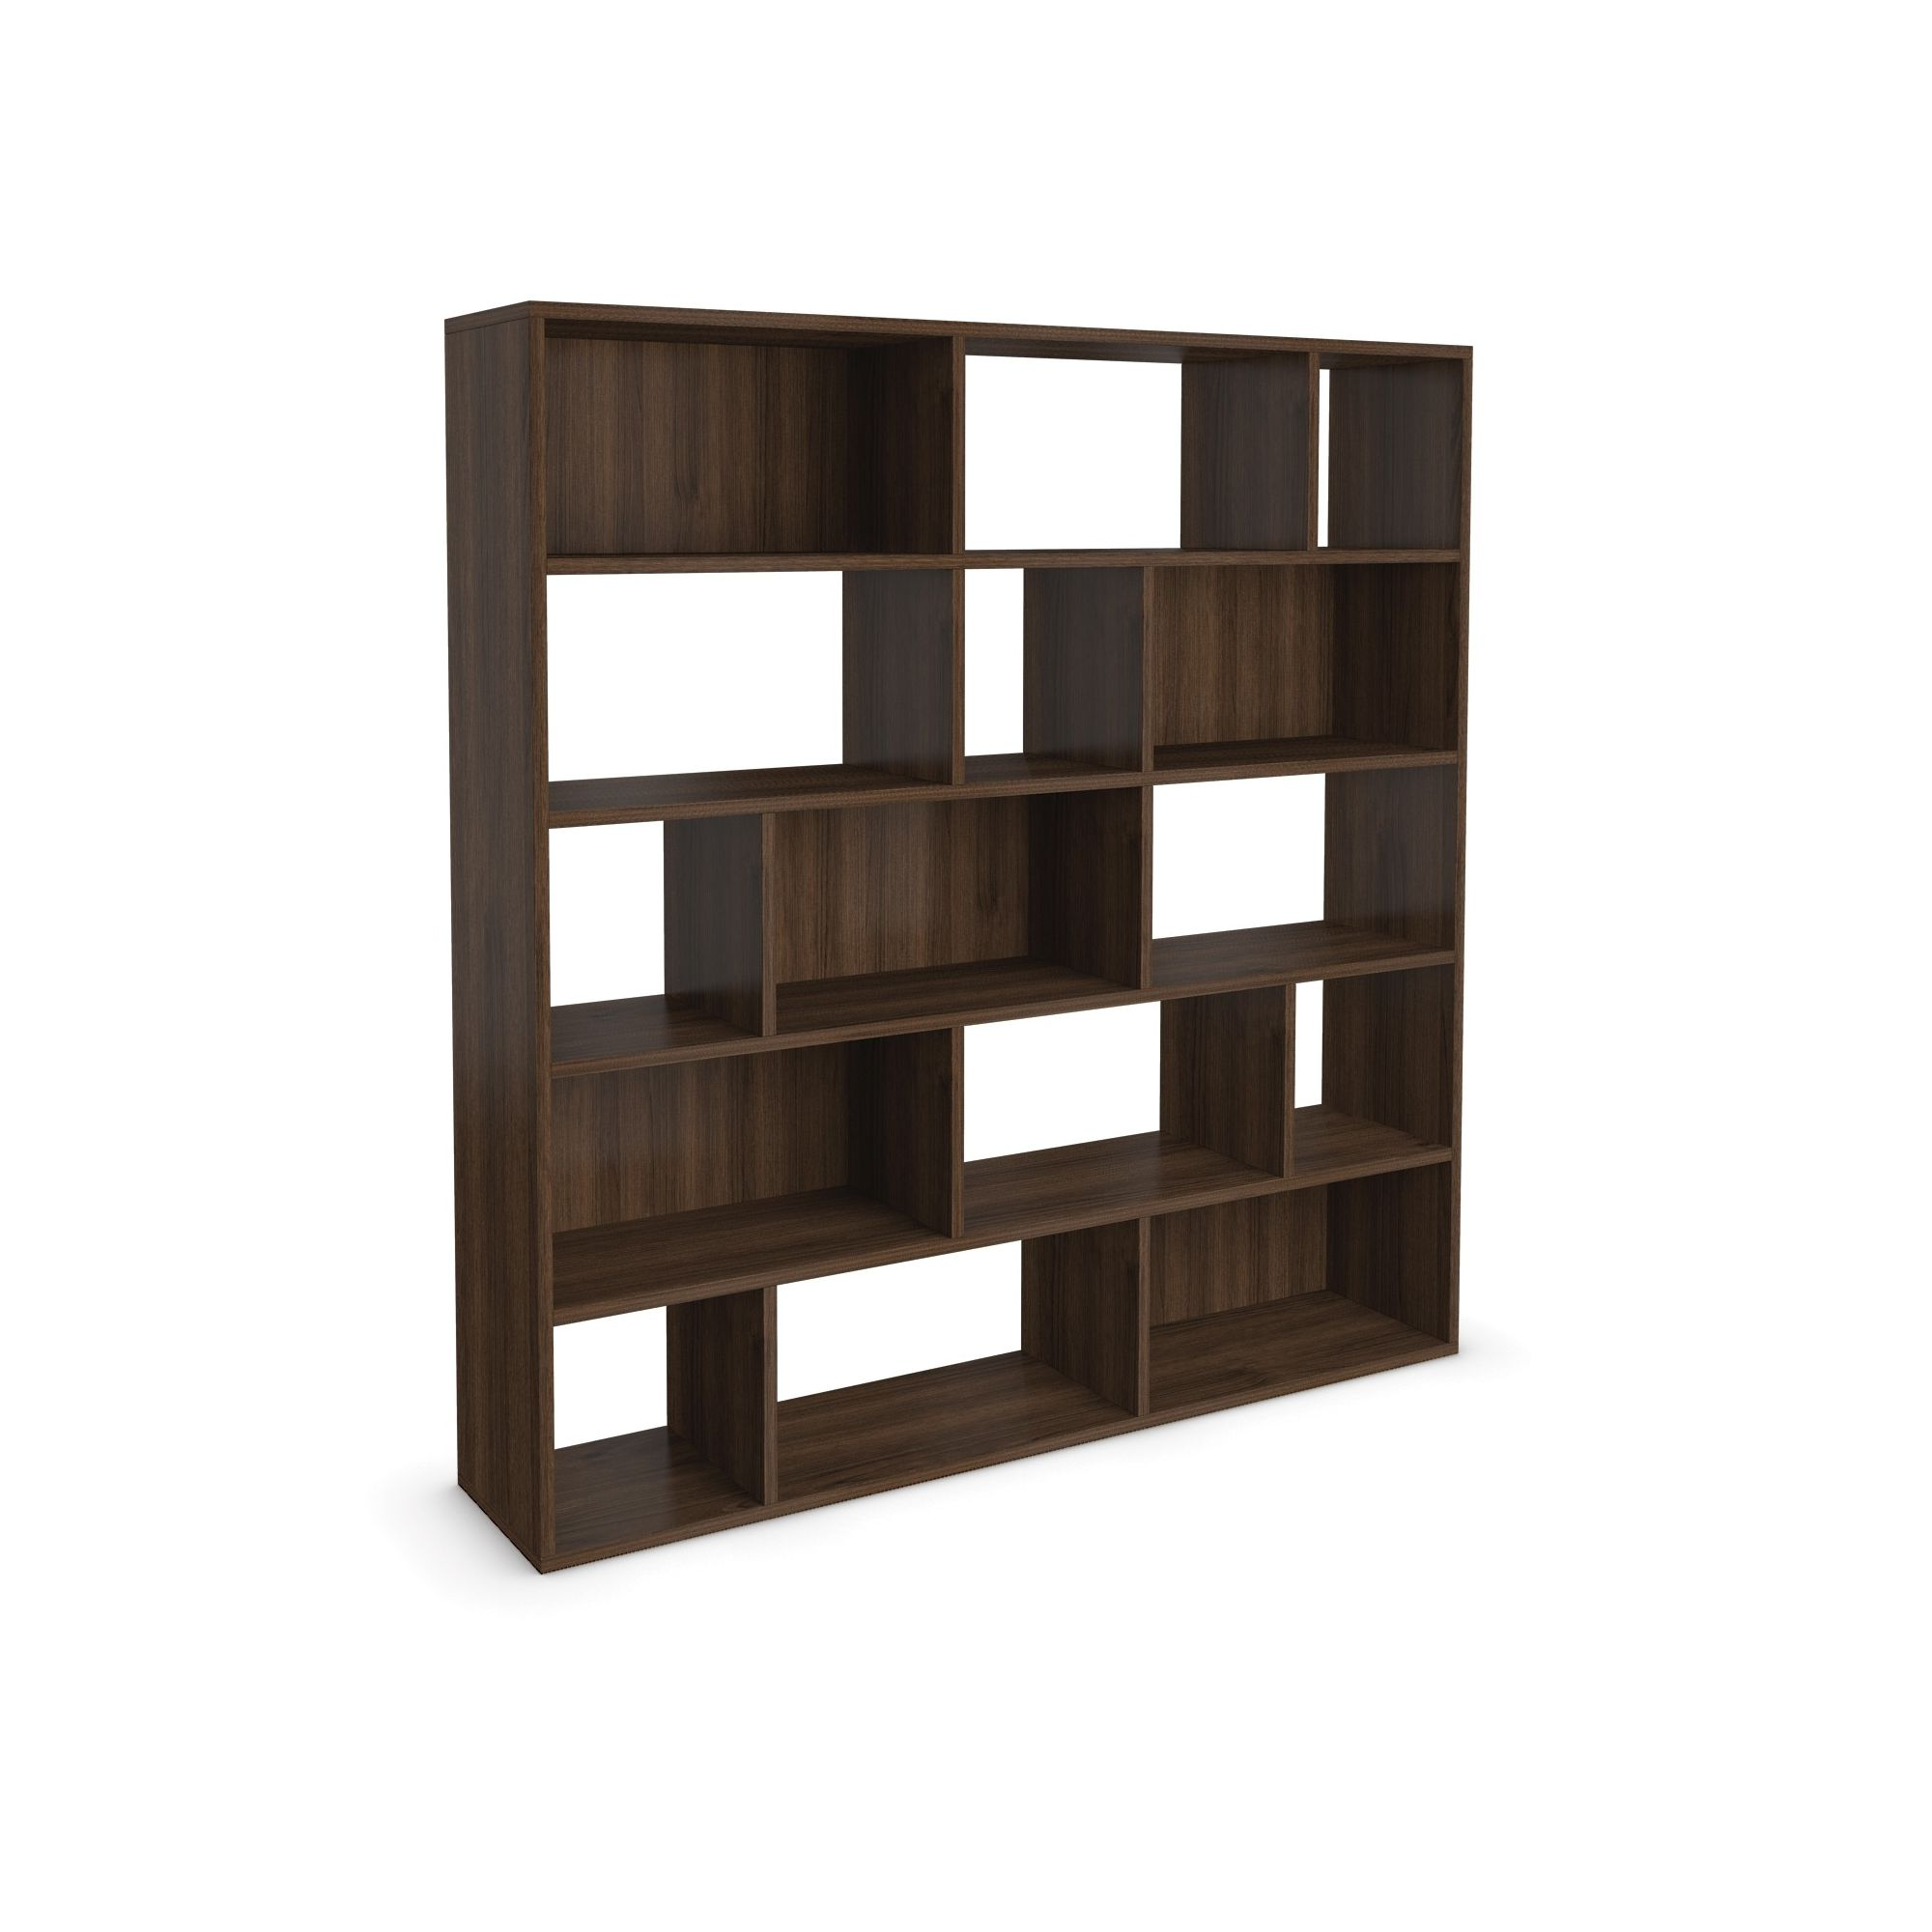 Urbane Designs Hadlee Contemporary Walnut Livingroom Large Asymmetric Shelf at Tesco Direct